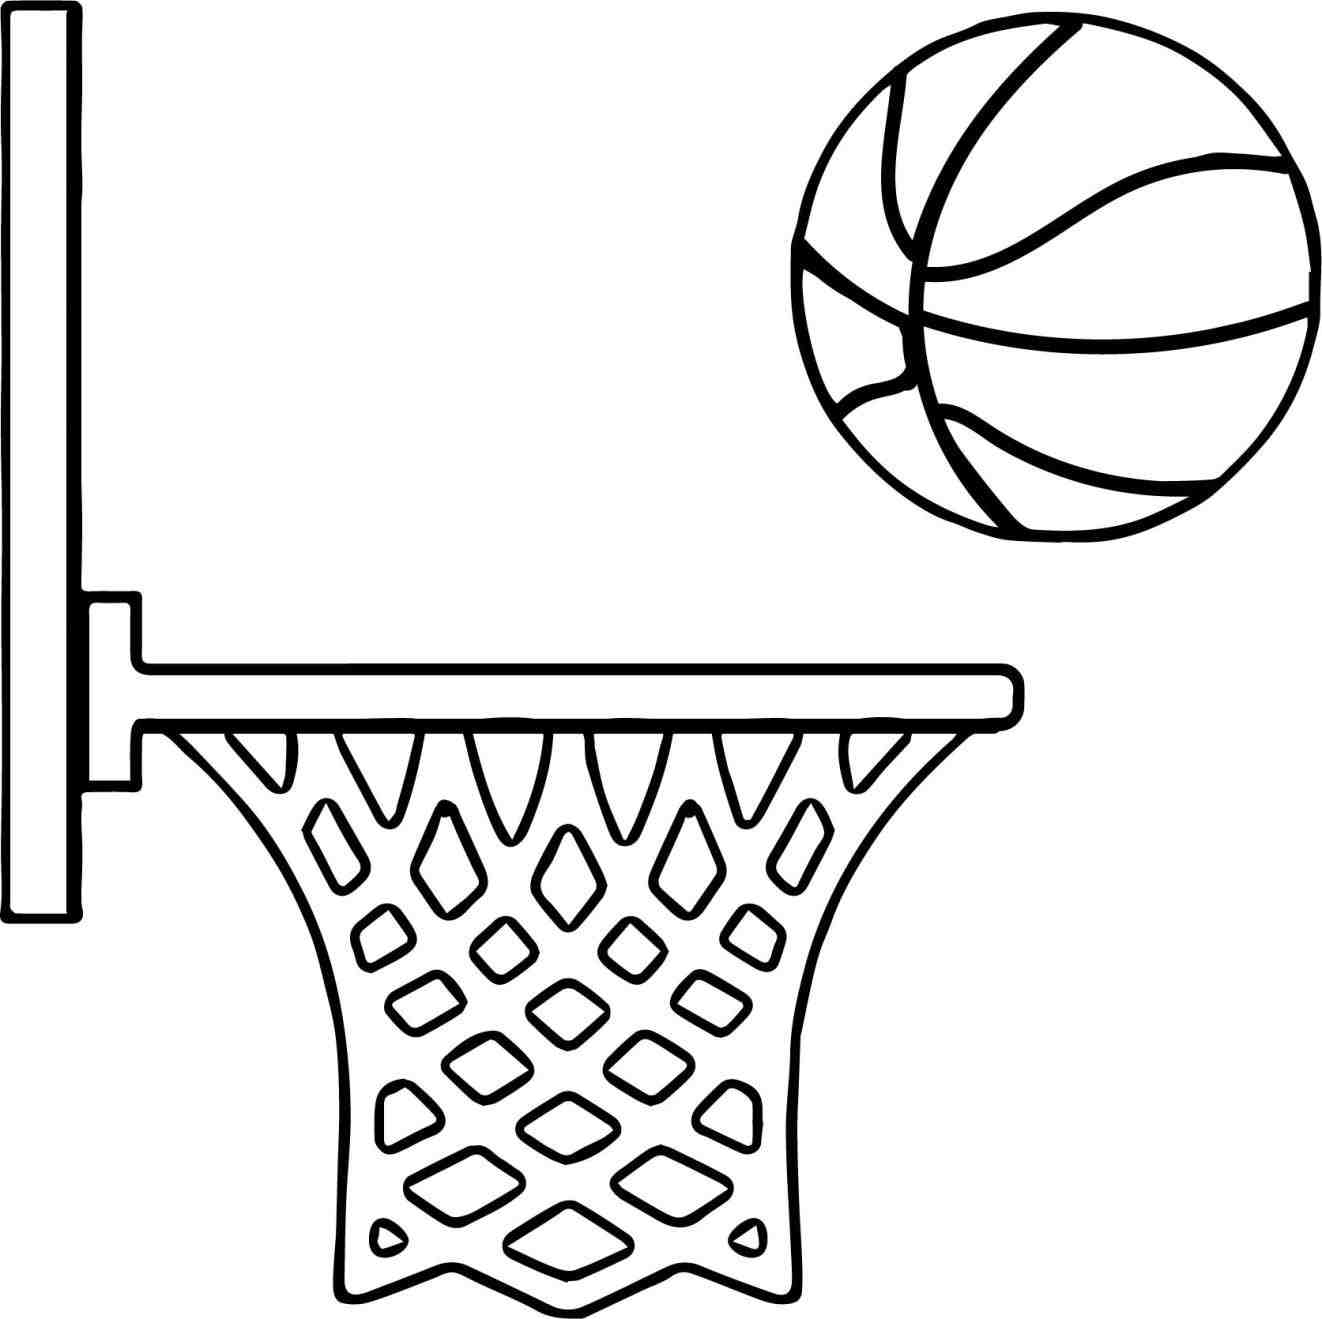 1322x1319 Stephen Curry Shoes Coloring Pages Warriors Logo Page Free